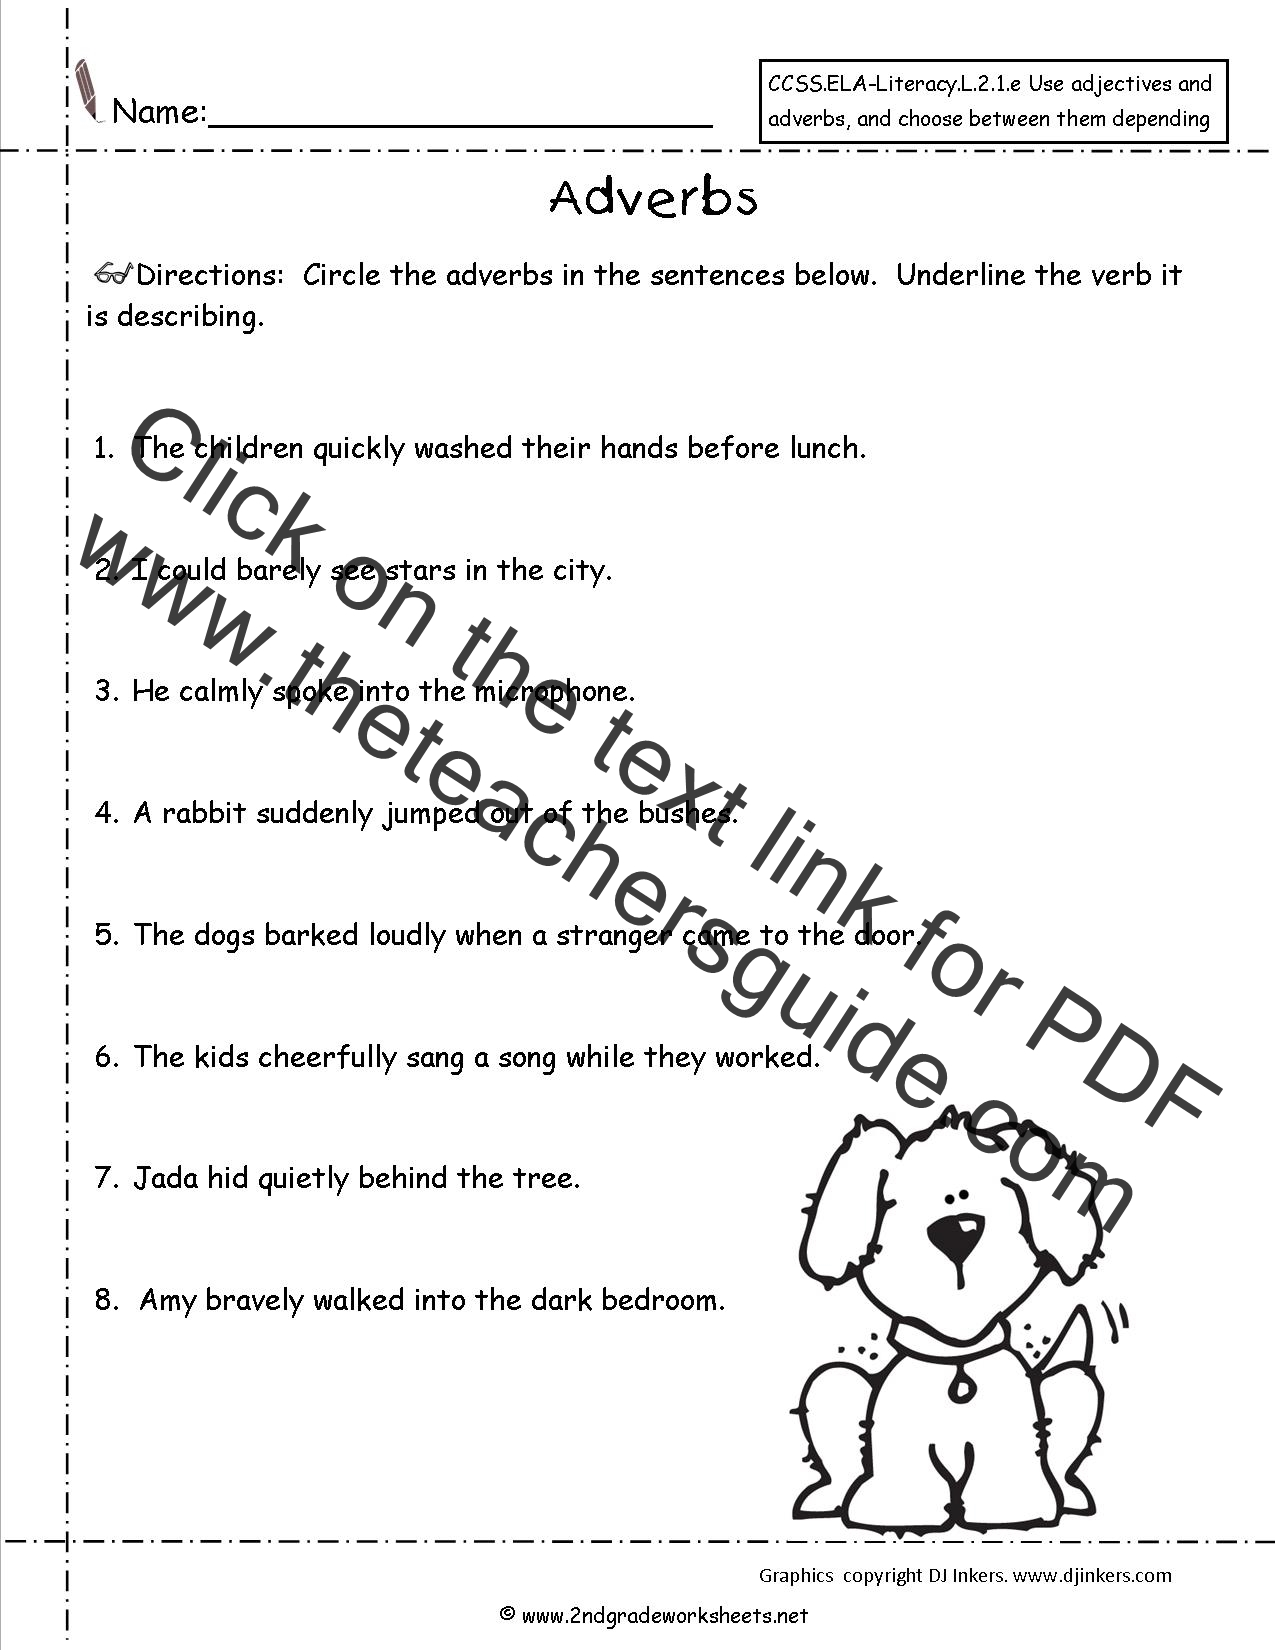 Worksheet About Adverbs